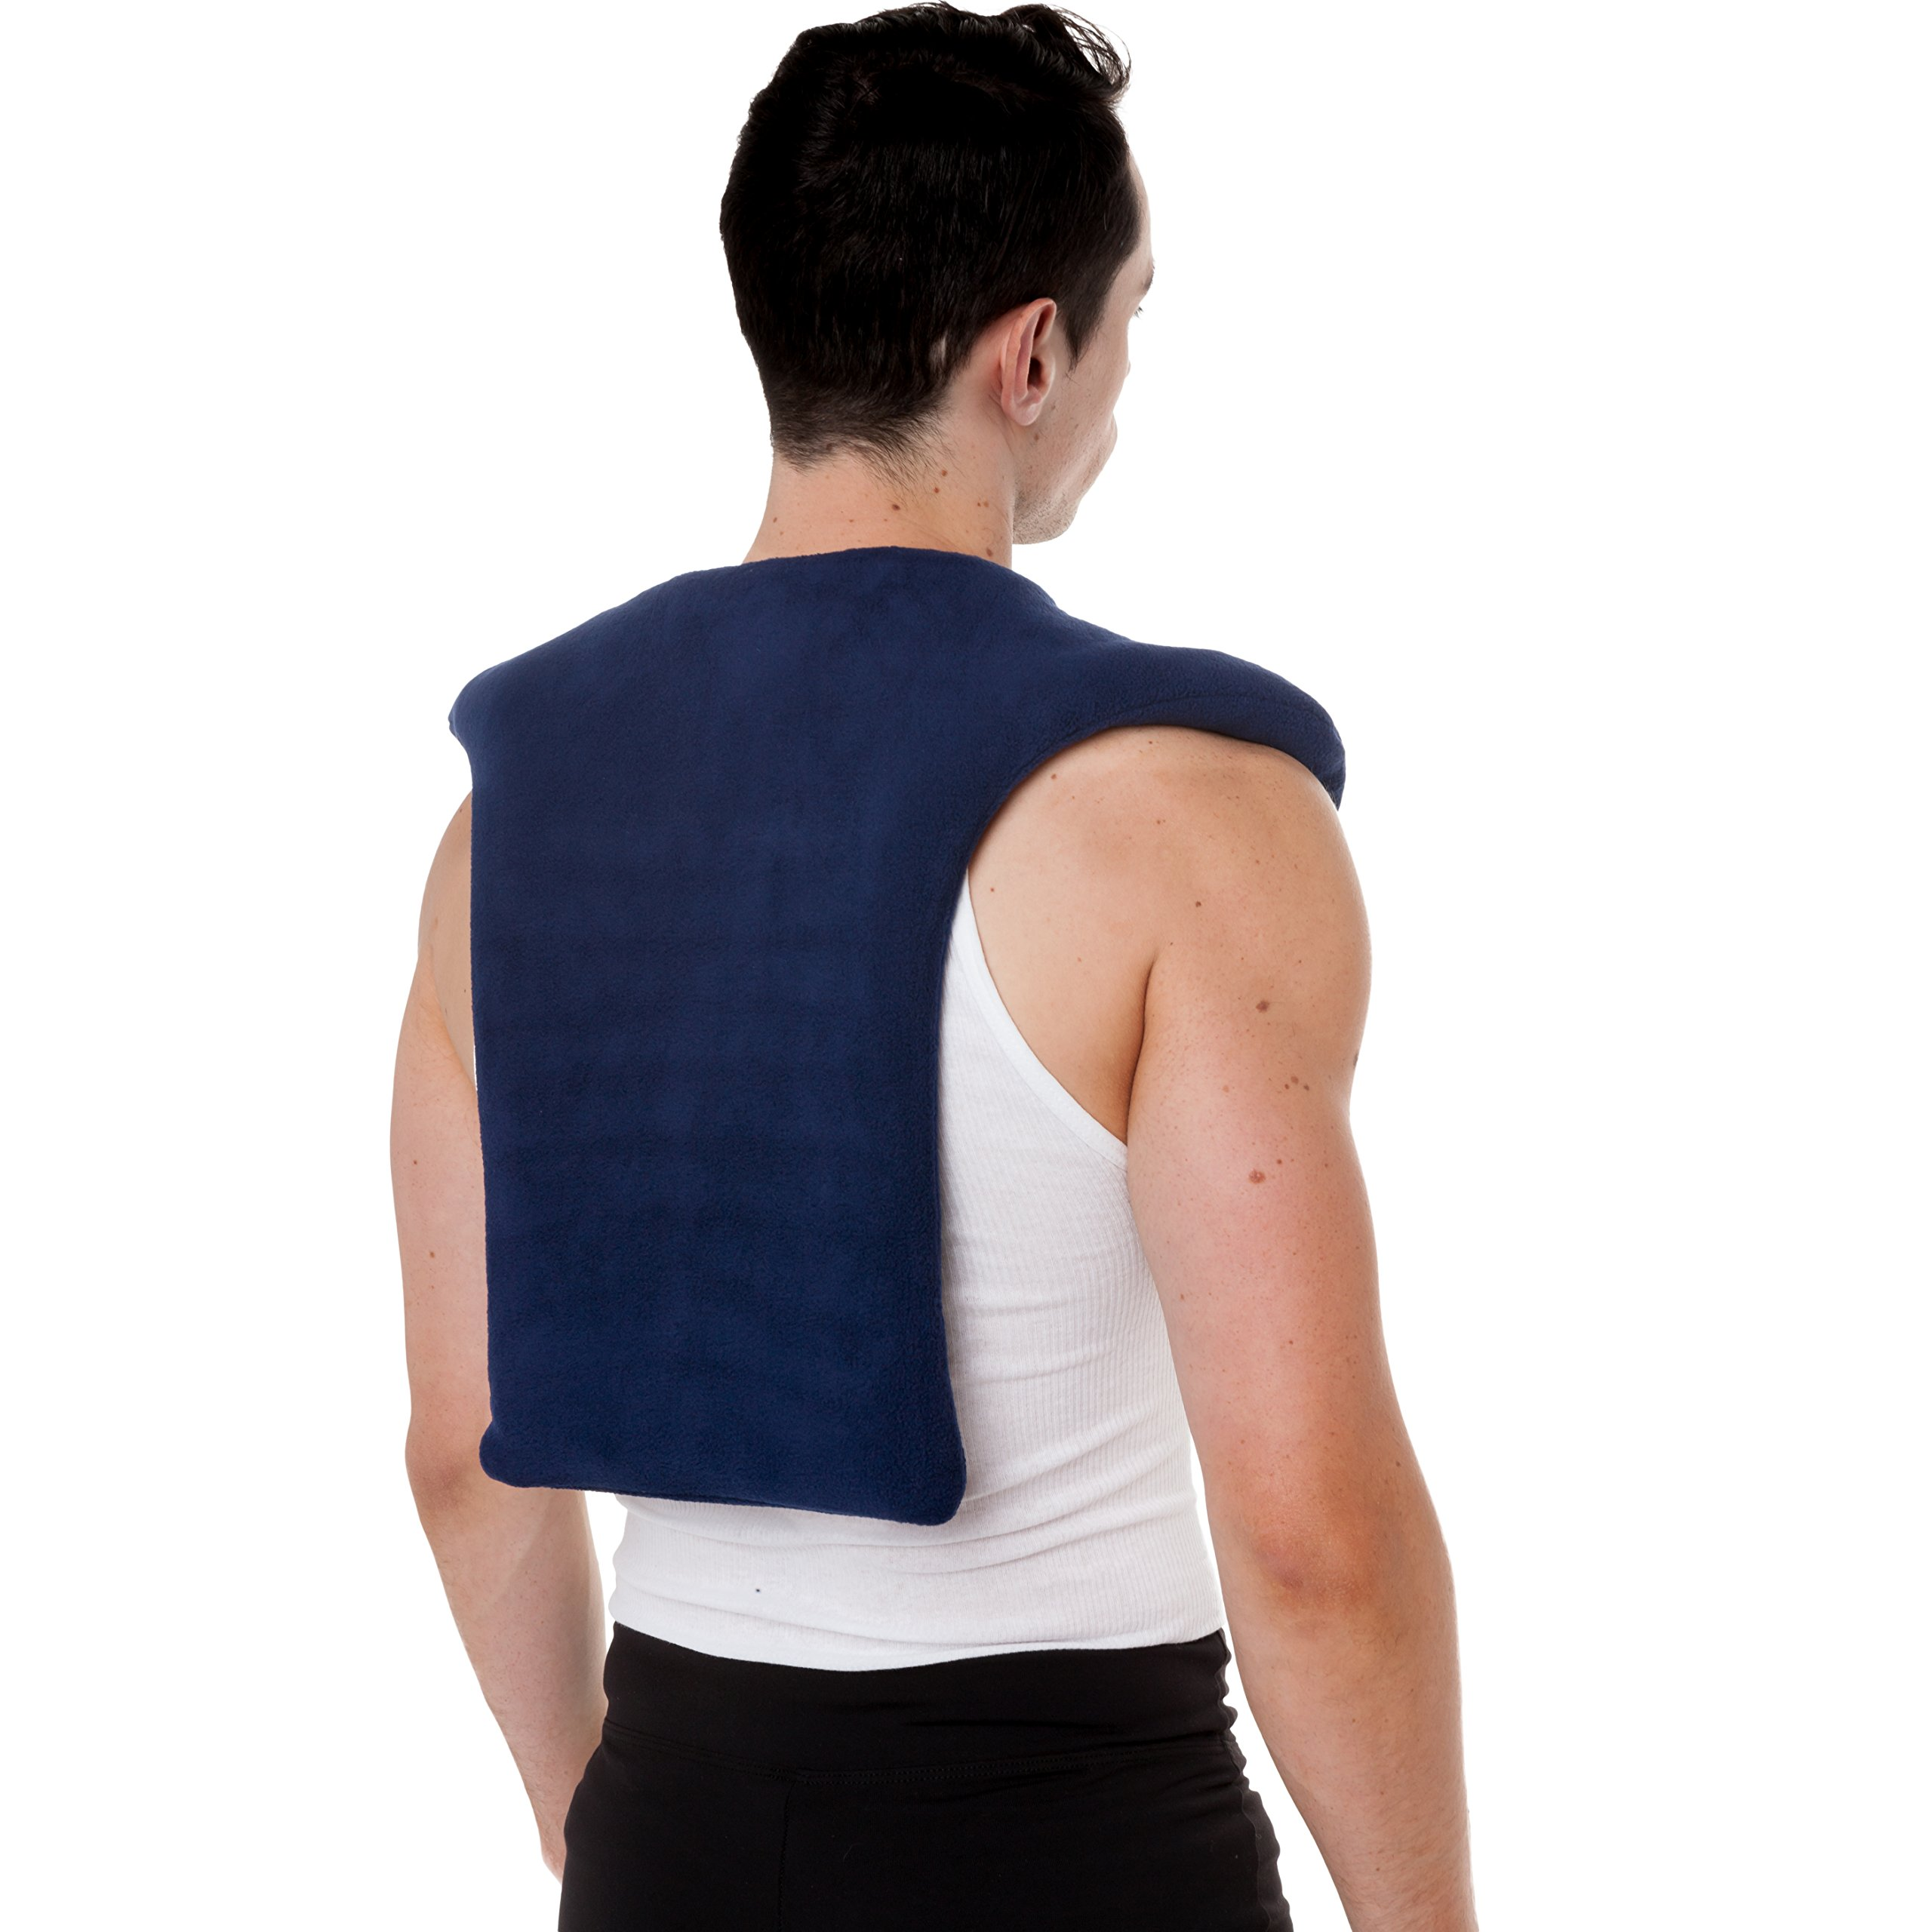 Sunny Bay Extra Large Microwave Shoulder & Upper Back Heating Wrap, Moist Hot and Cold Pack, Thermal Therapy for Back Pain, Navy Blue, 3.8 Pound